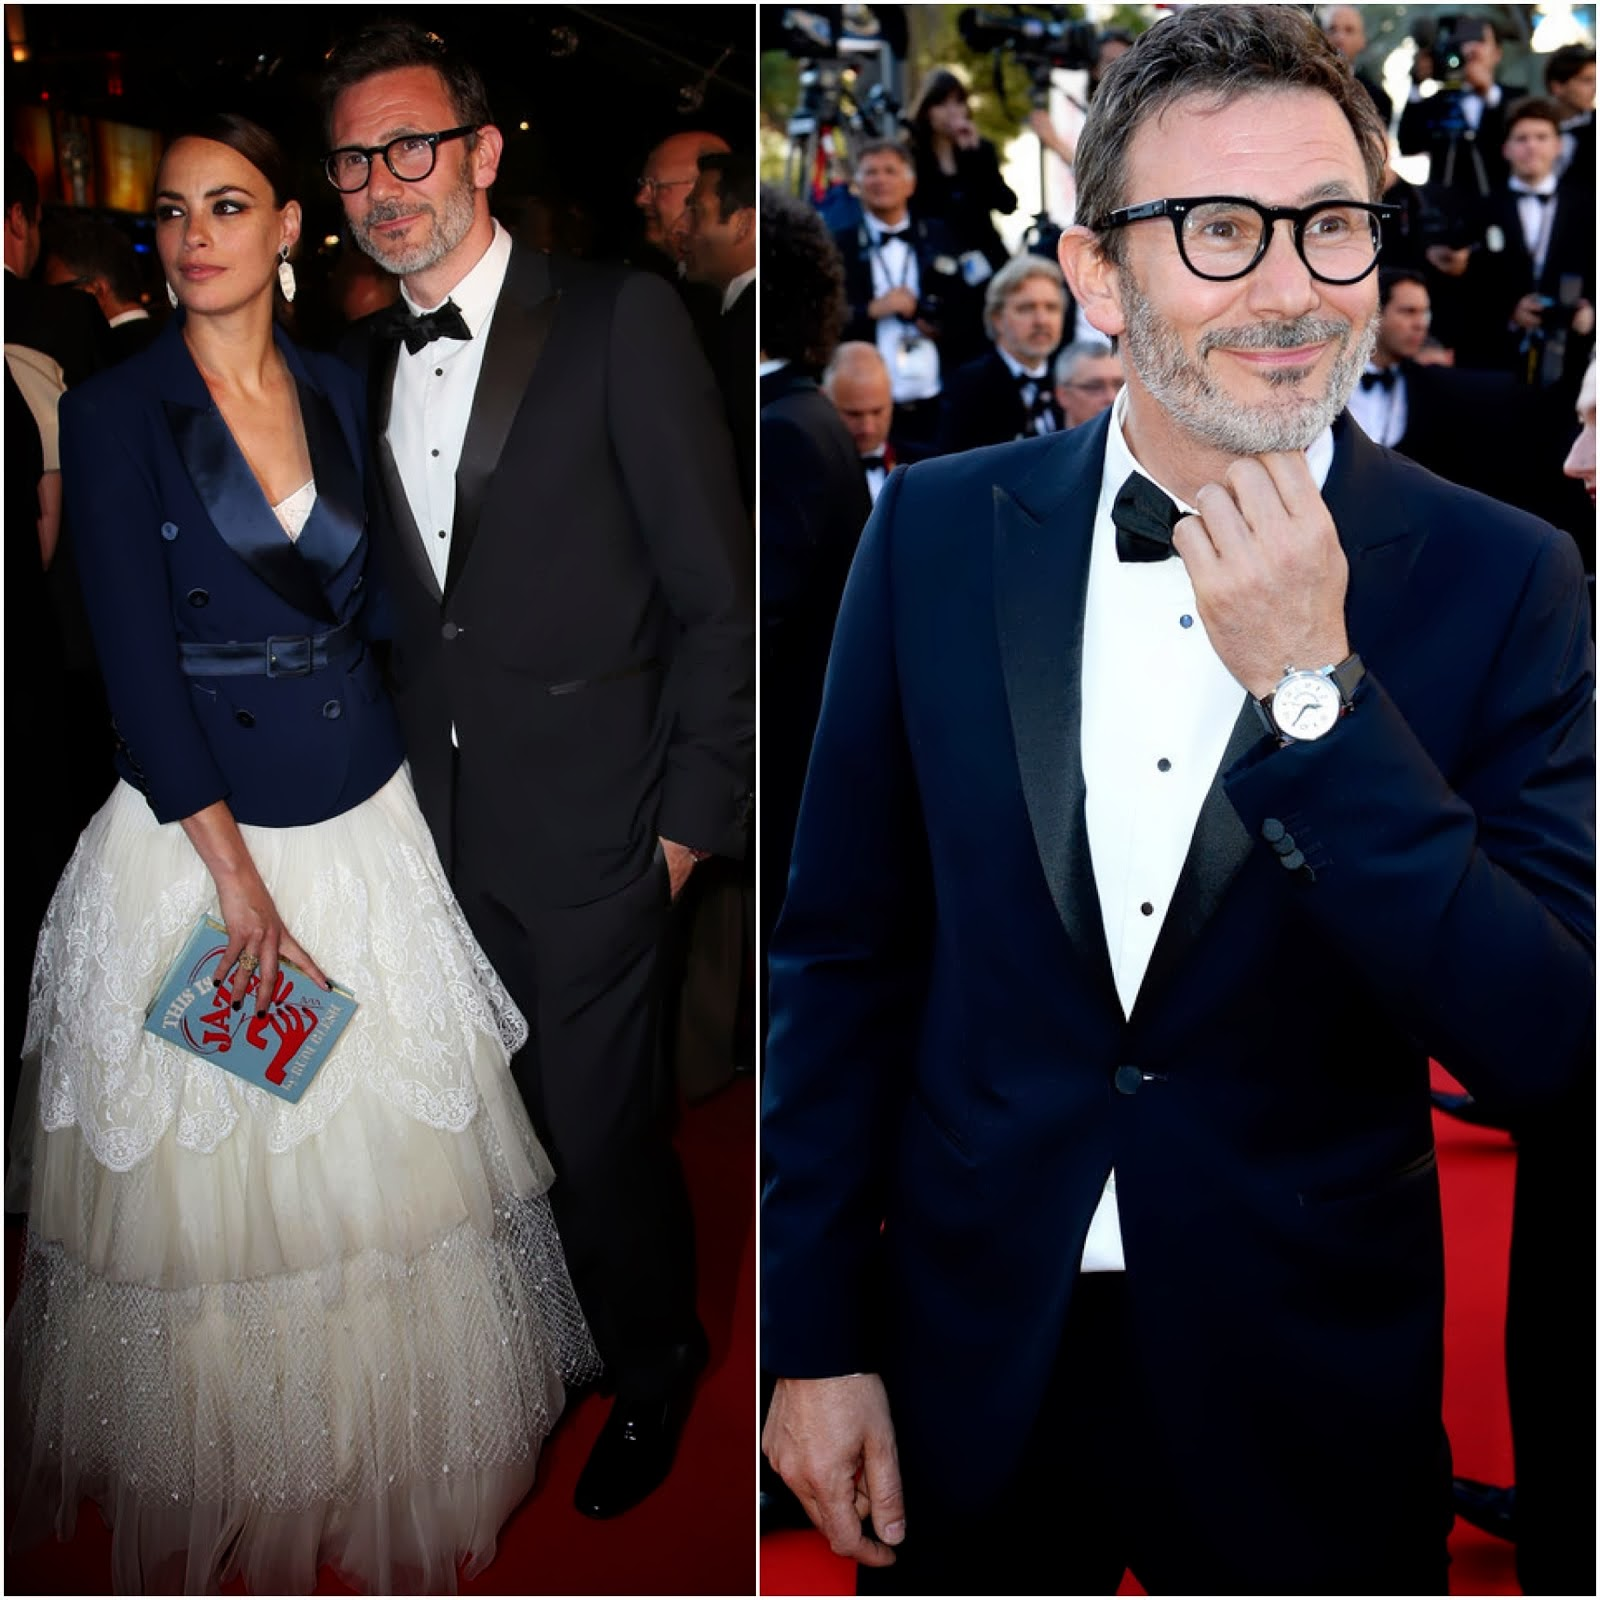 00O00 Menswear Blog: Director Michel Hazanavicius's Montblanc TimeWalker Northern Hemisphere timepiece - Cannes Film Festival 2013